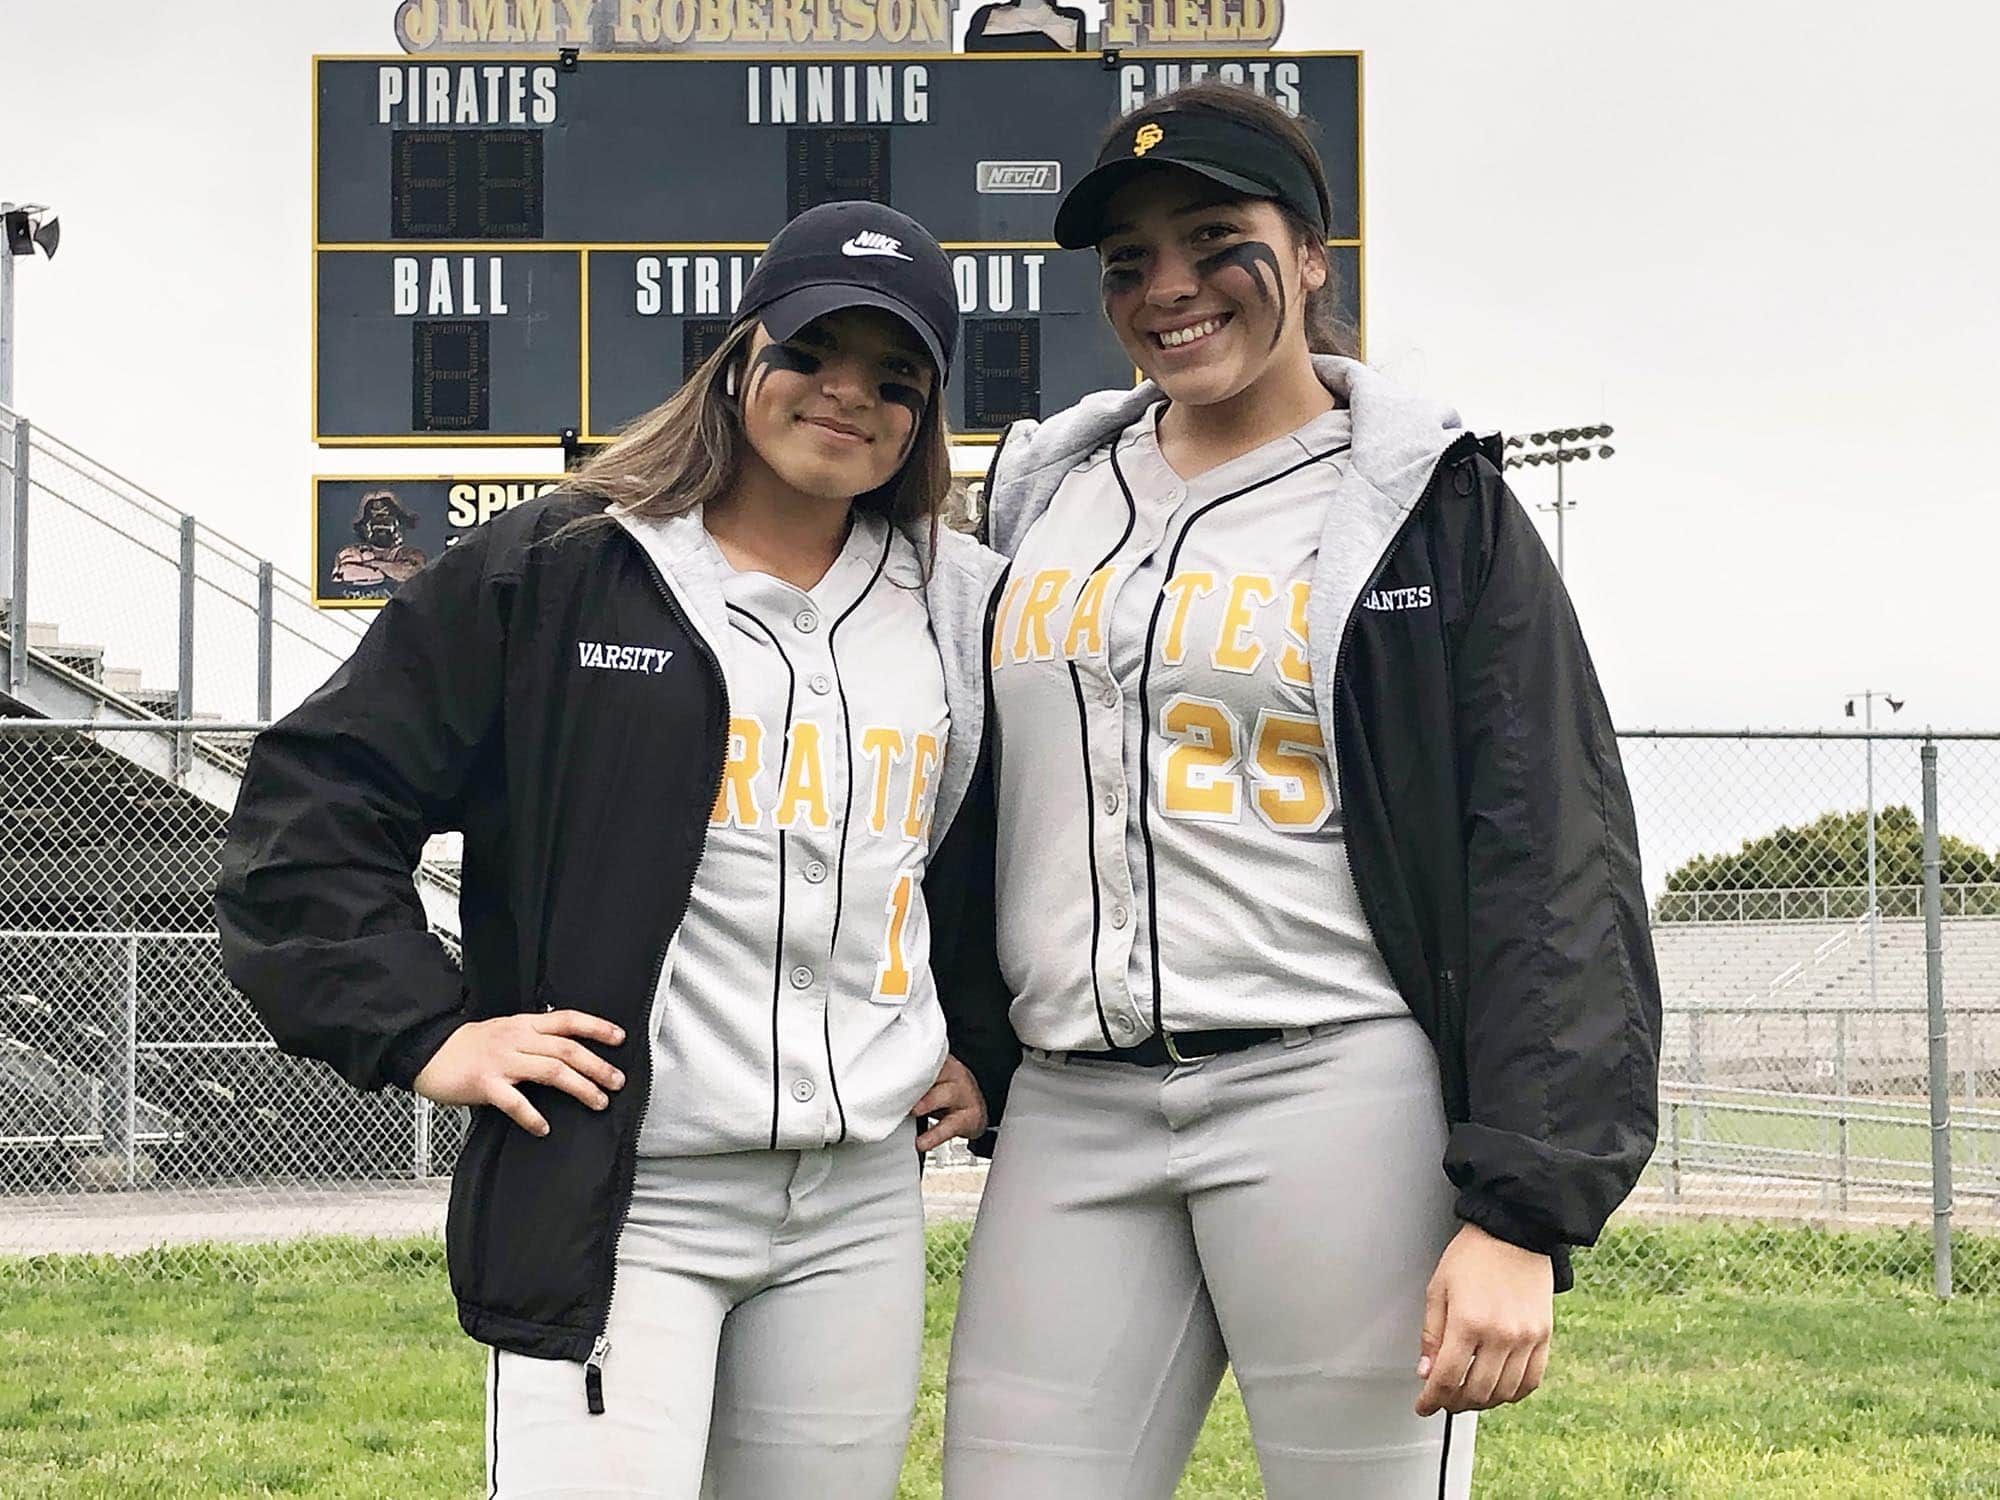 Photo of Prep Softball players for San Pedro Today magazine. (Photo: Jamaal K. Street)